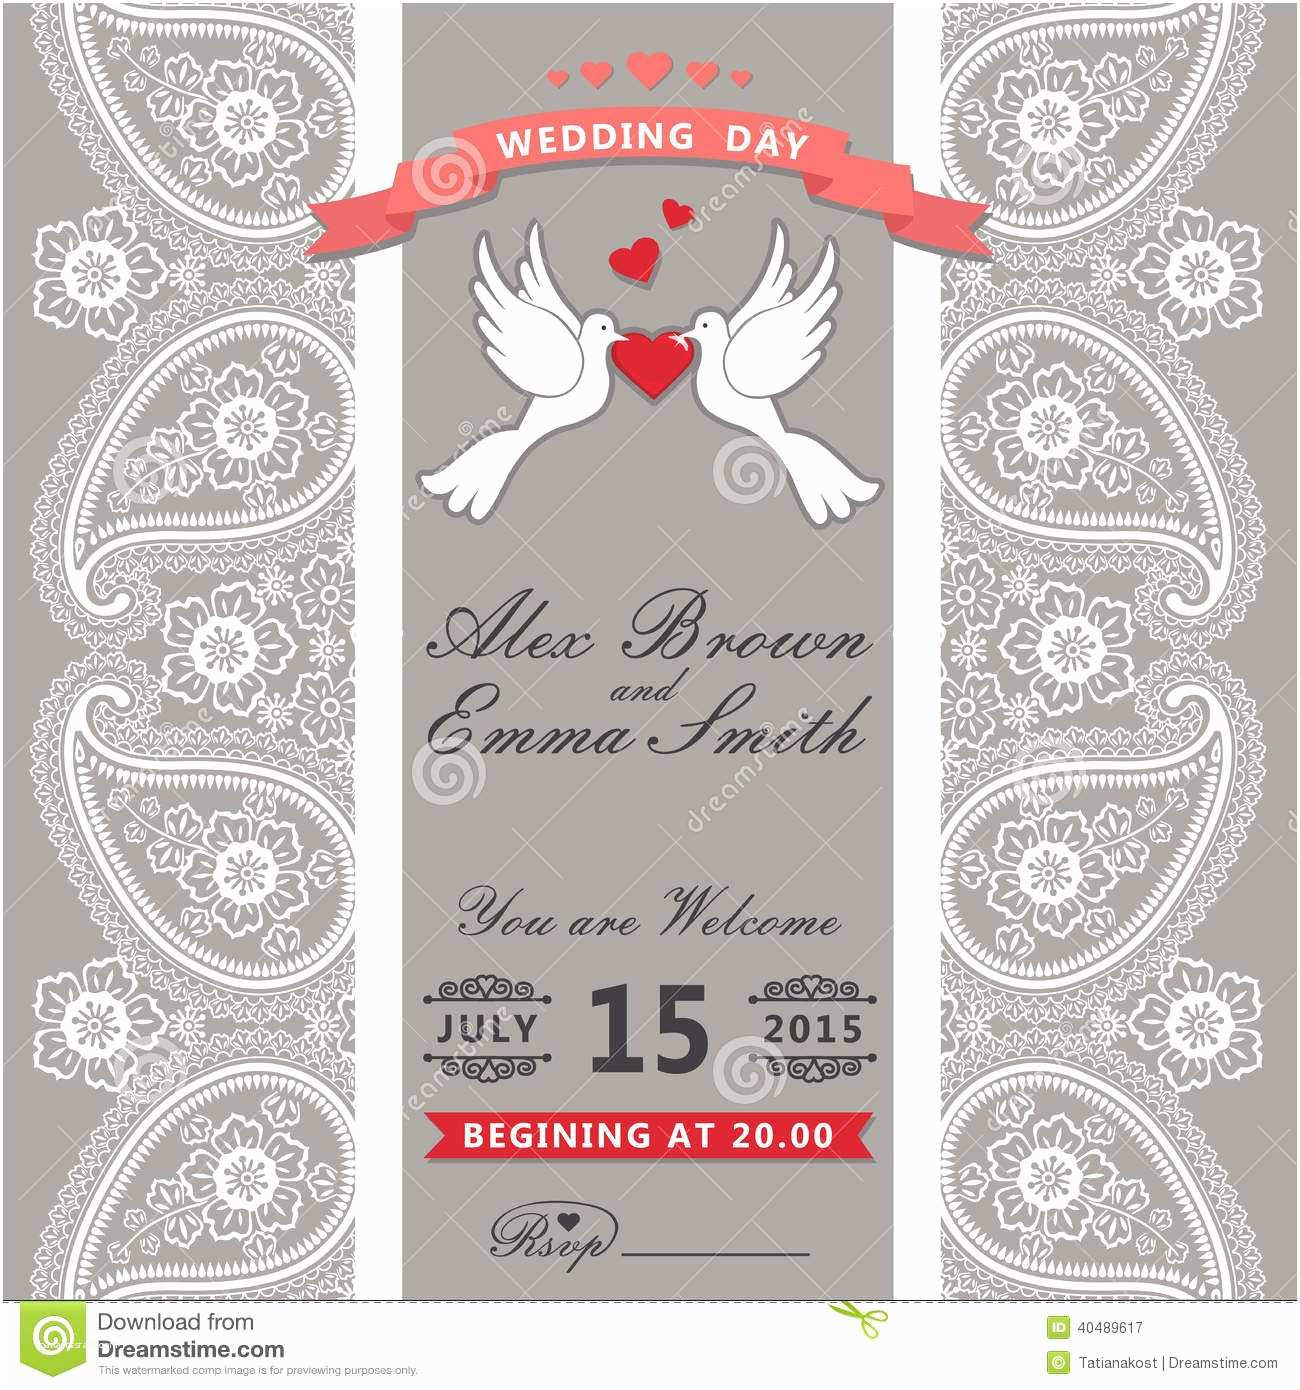 Paisley Wedding Invitation Template Cute Wedding Invitation Paisley Border Lace Cartoon